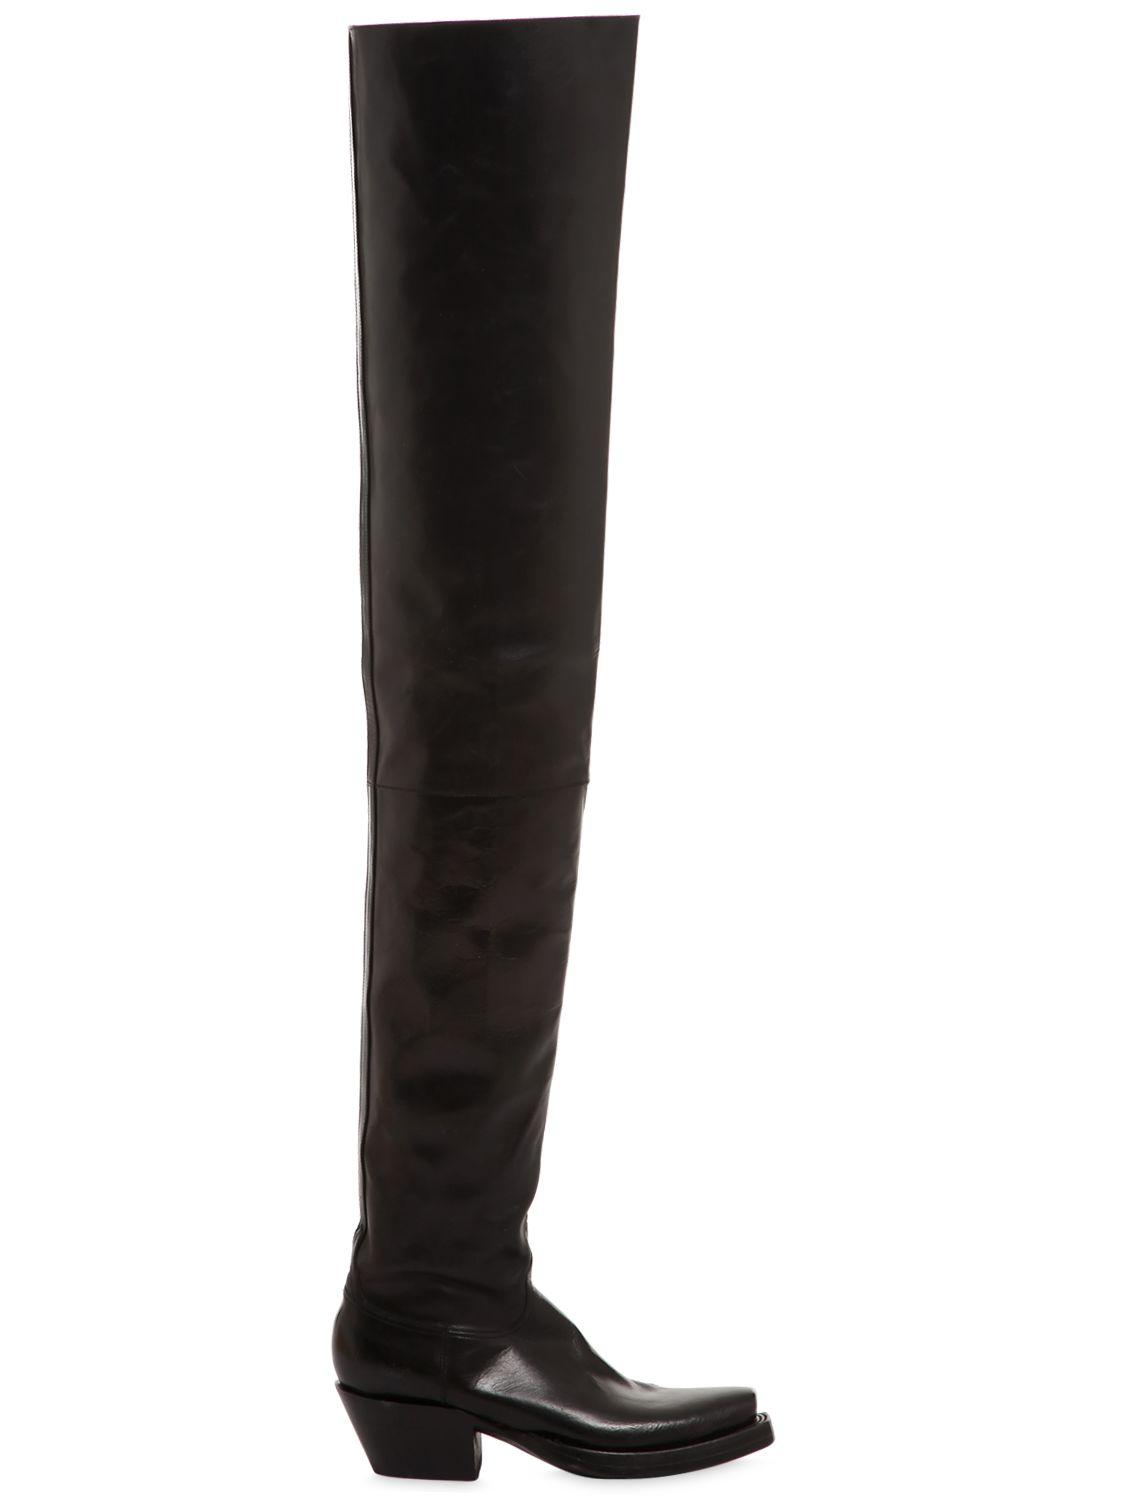 Lyst Vetements Lucchese Thigh High Boots In Black For Men